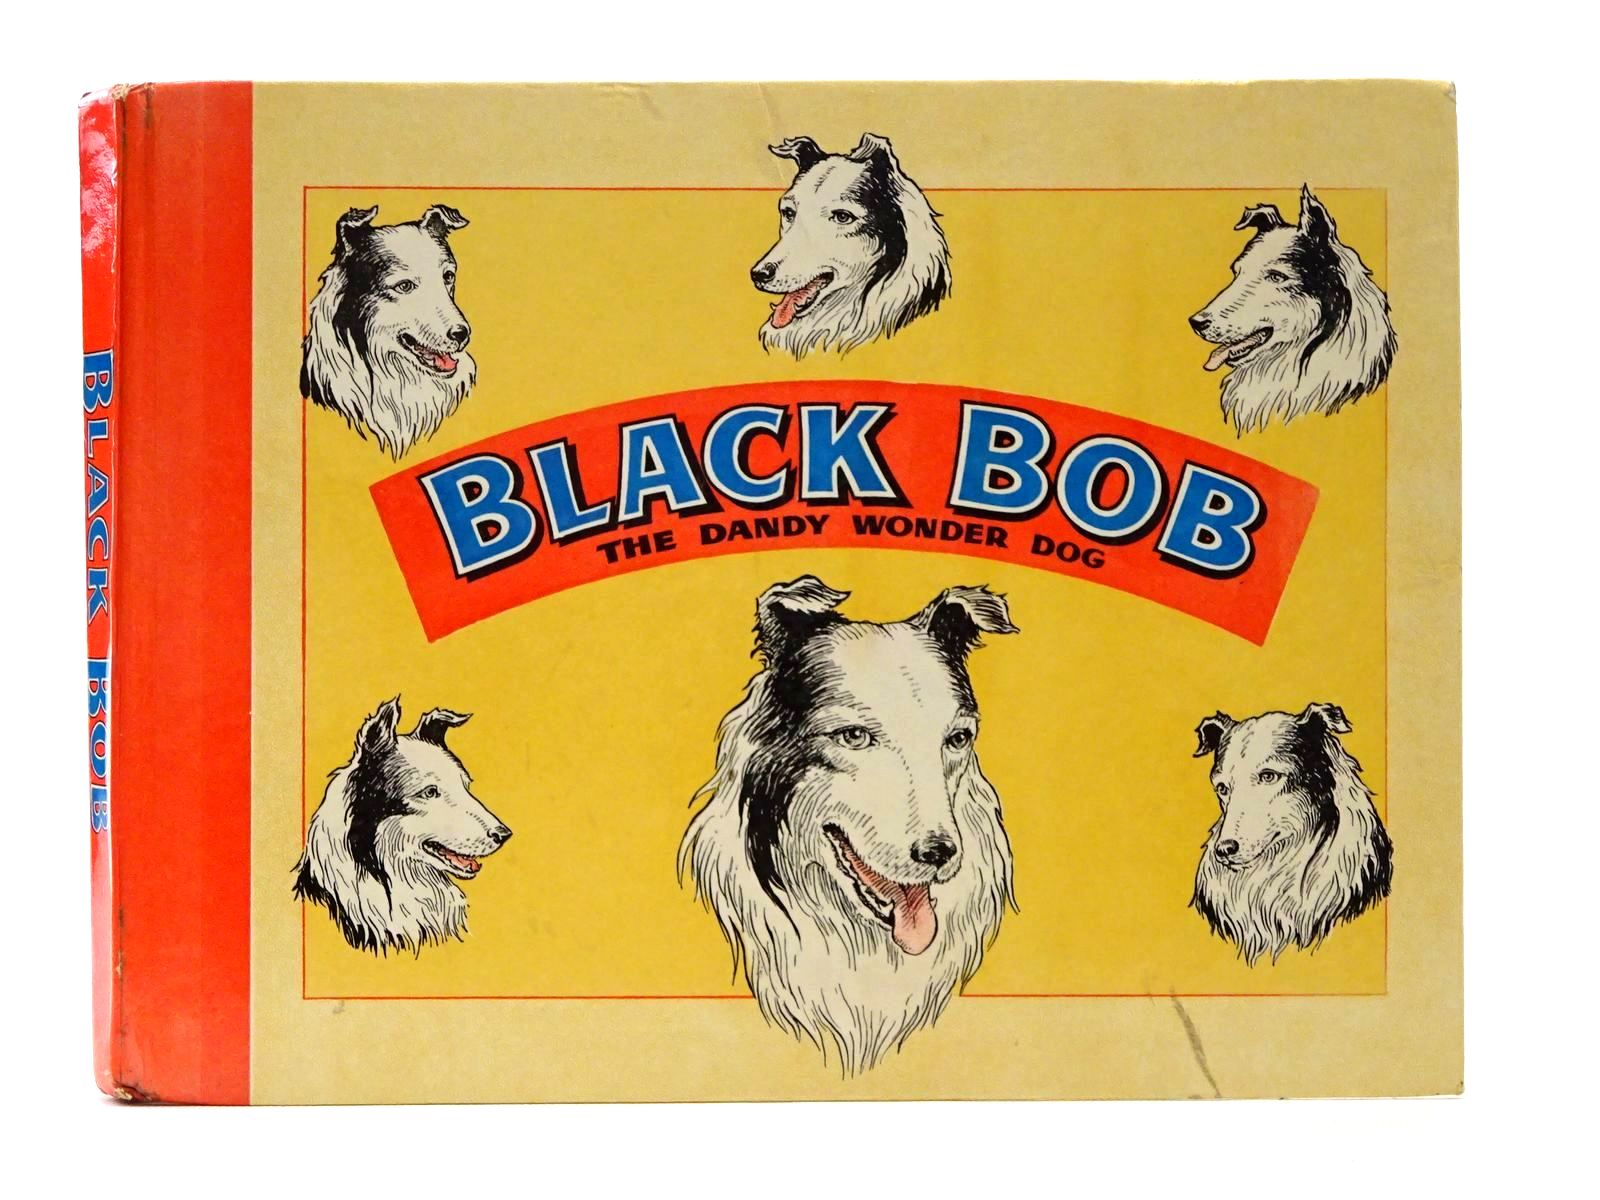 Photo of BLACK BOB THE DANDY WONDER DOG 1961 illustrated by Prout, Jack published by D.C. Thomson & Co Ltd. (STOCK CODE: 1317247)  for sale by Stella & Rose's Books